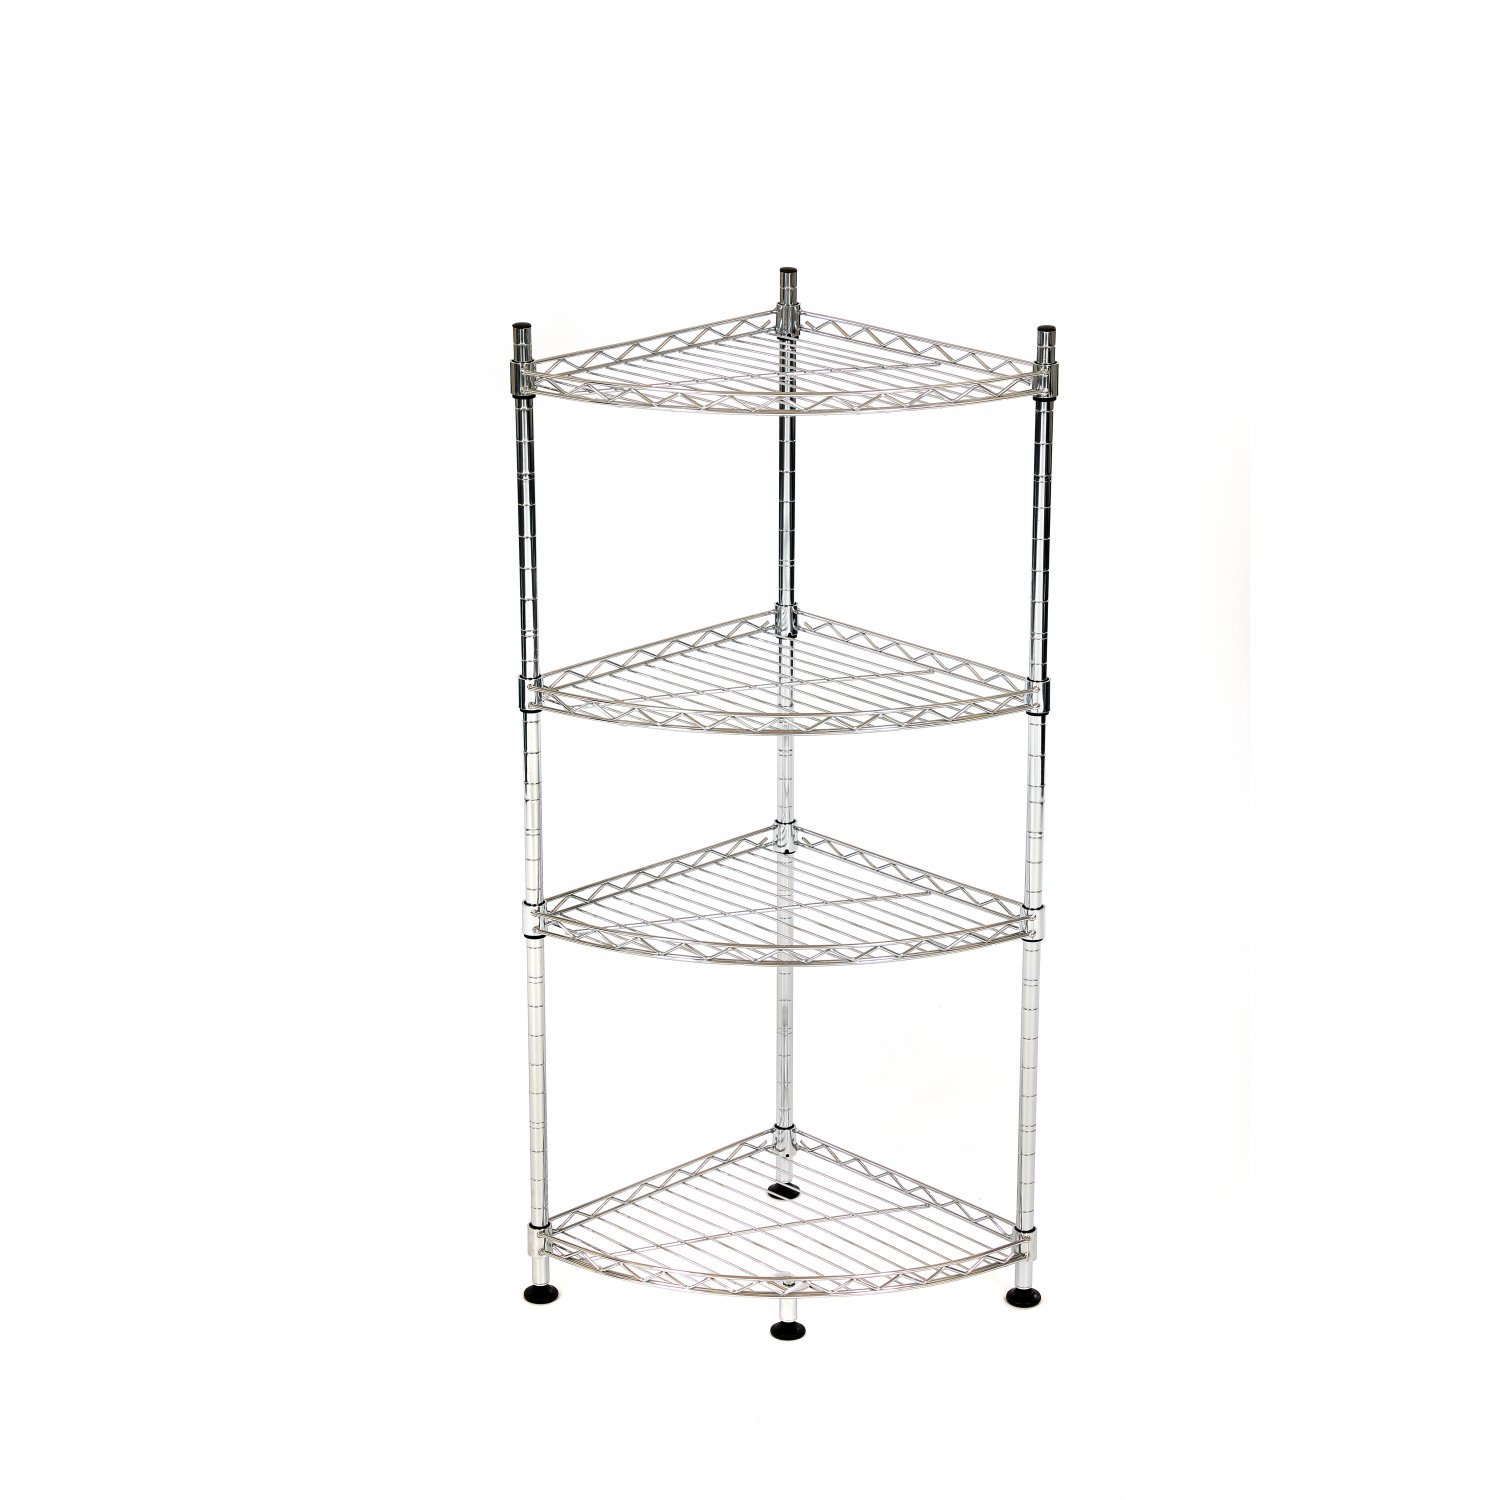 4 Tier Heavy Duty Steel Wire Rack Bathroom Corner Storage Unit throughout dimensions 1500 X 1500